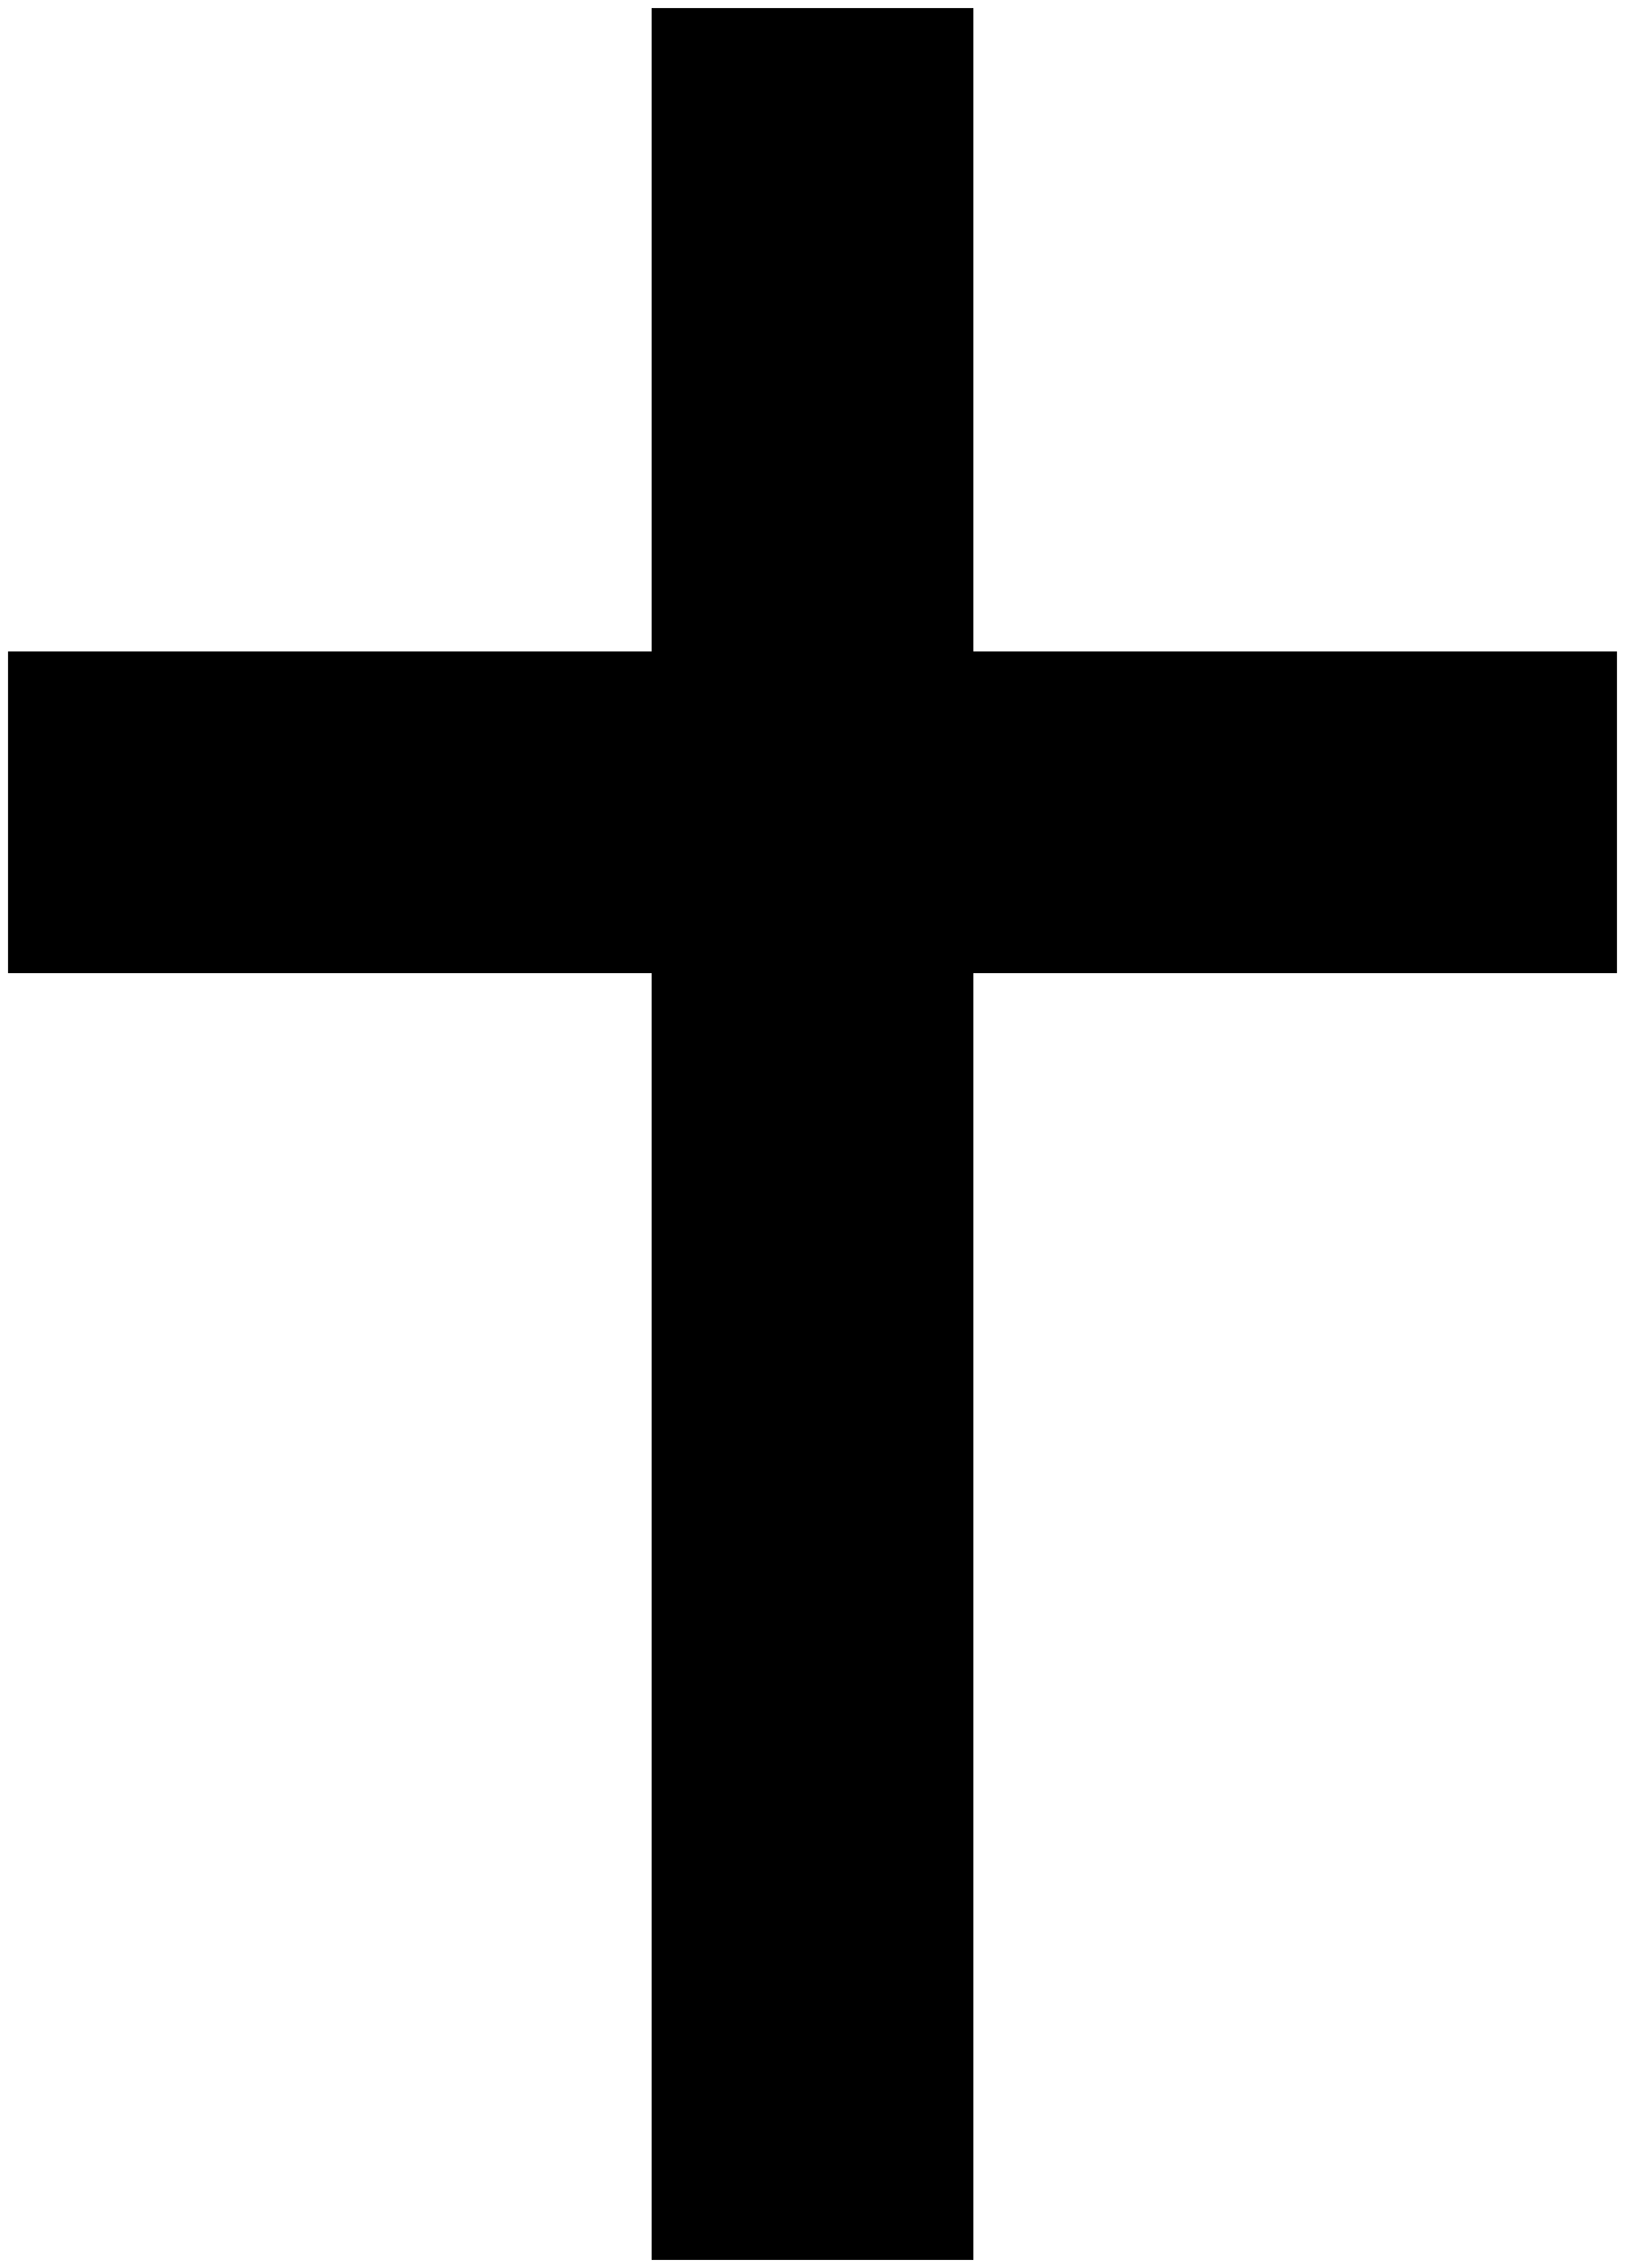 Simple Christian Cross Clipart Transparent Png Stickpng